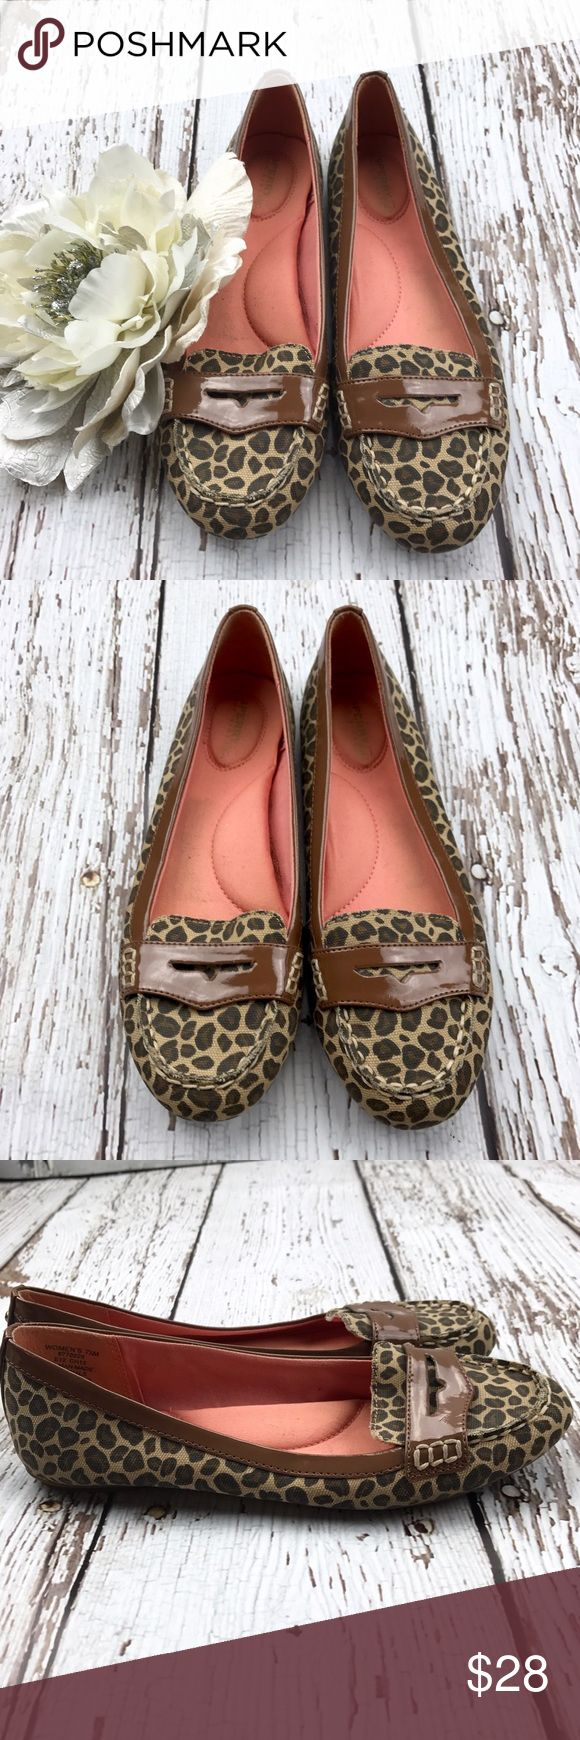 💕SALE💕 Sperry Top-sider Loafers Amazing 💕 Sperry Topsider Loafers with added arch support Foam insoles for super comfort these beauties can be worn all day and still feel great!! Sperry Top-Sider Shoes Flats & Loafers